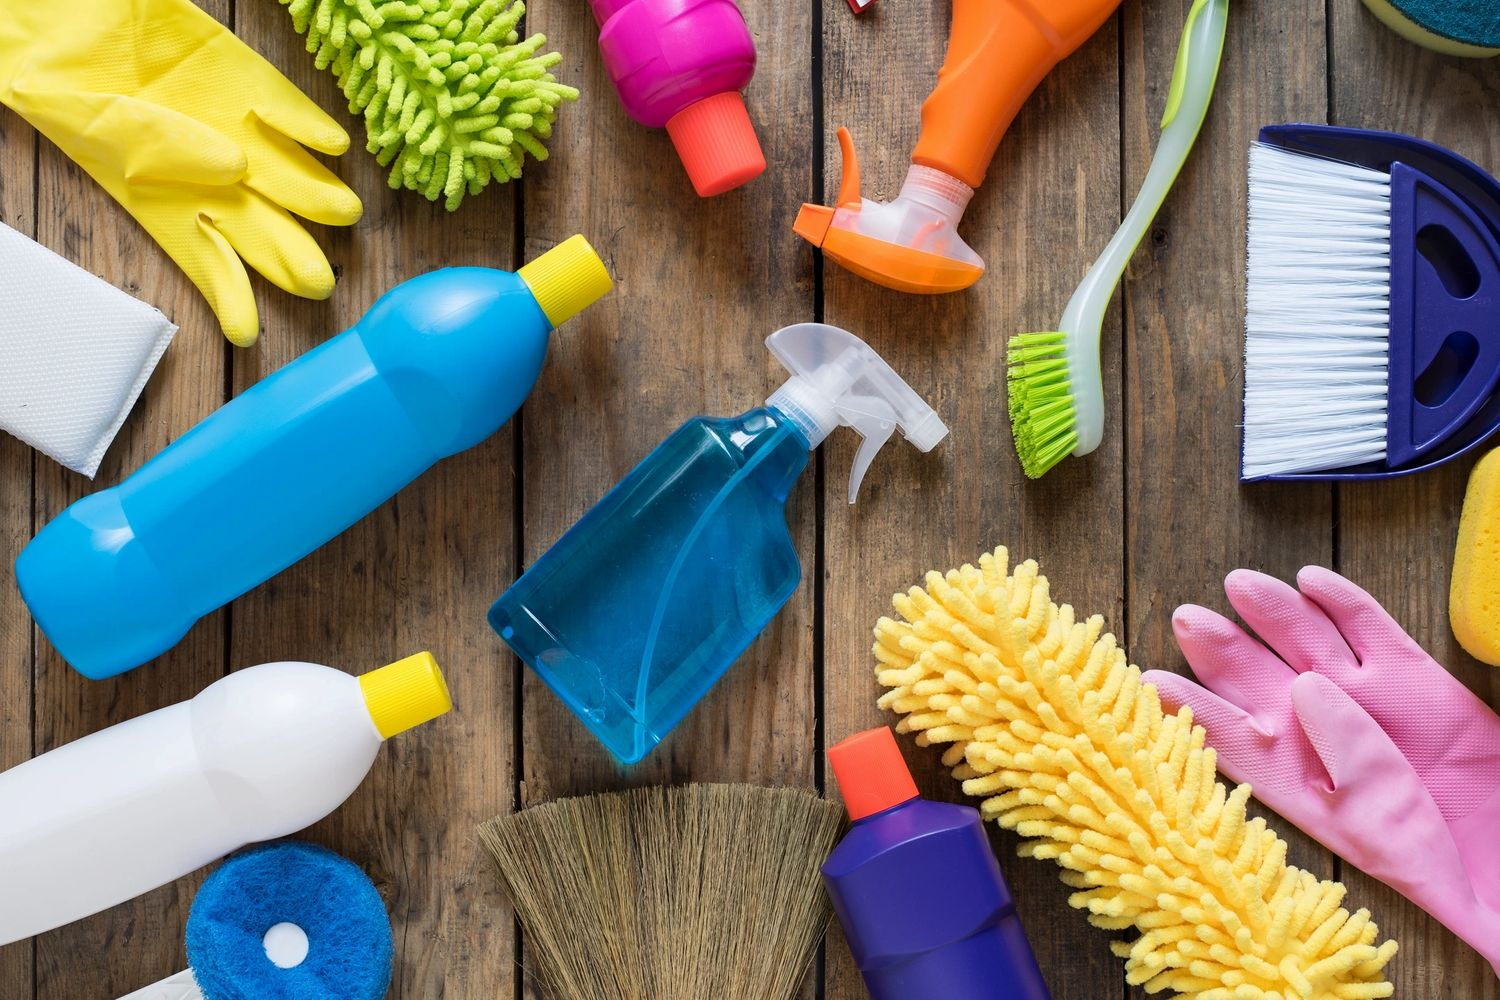 Cleaning products for home & business that are biodegradable